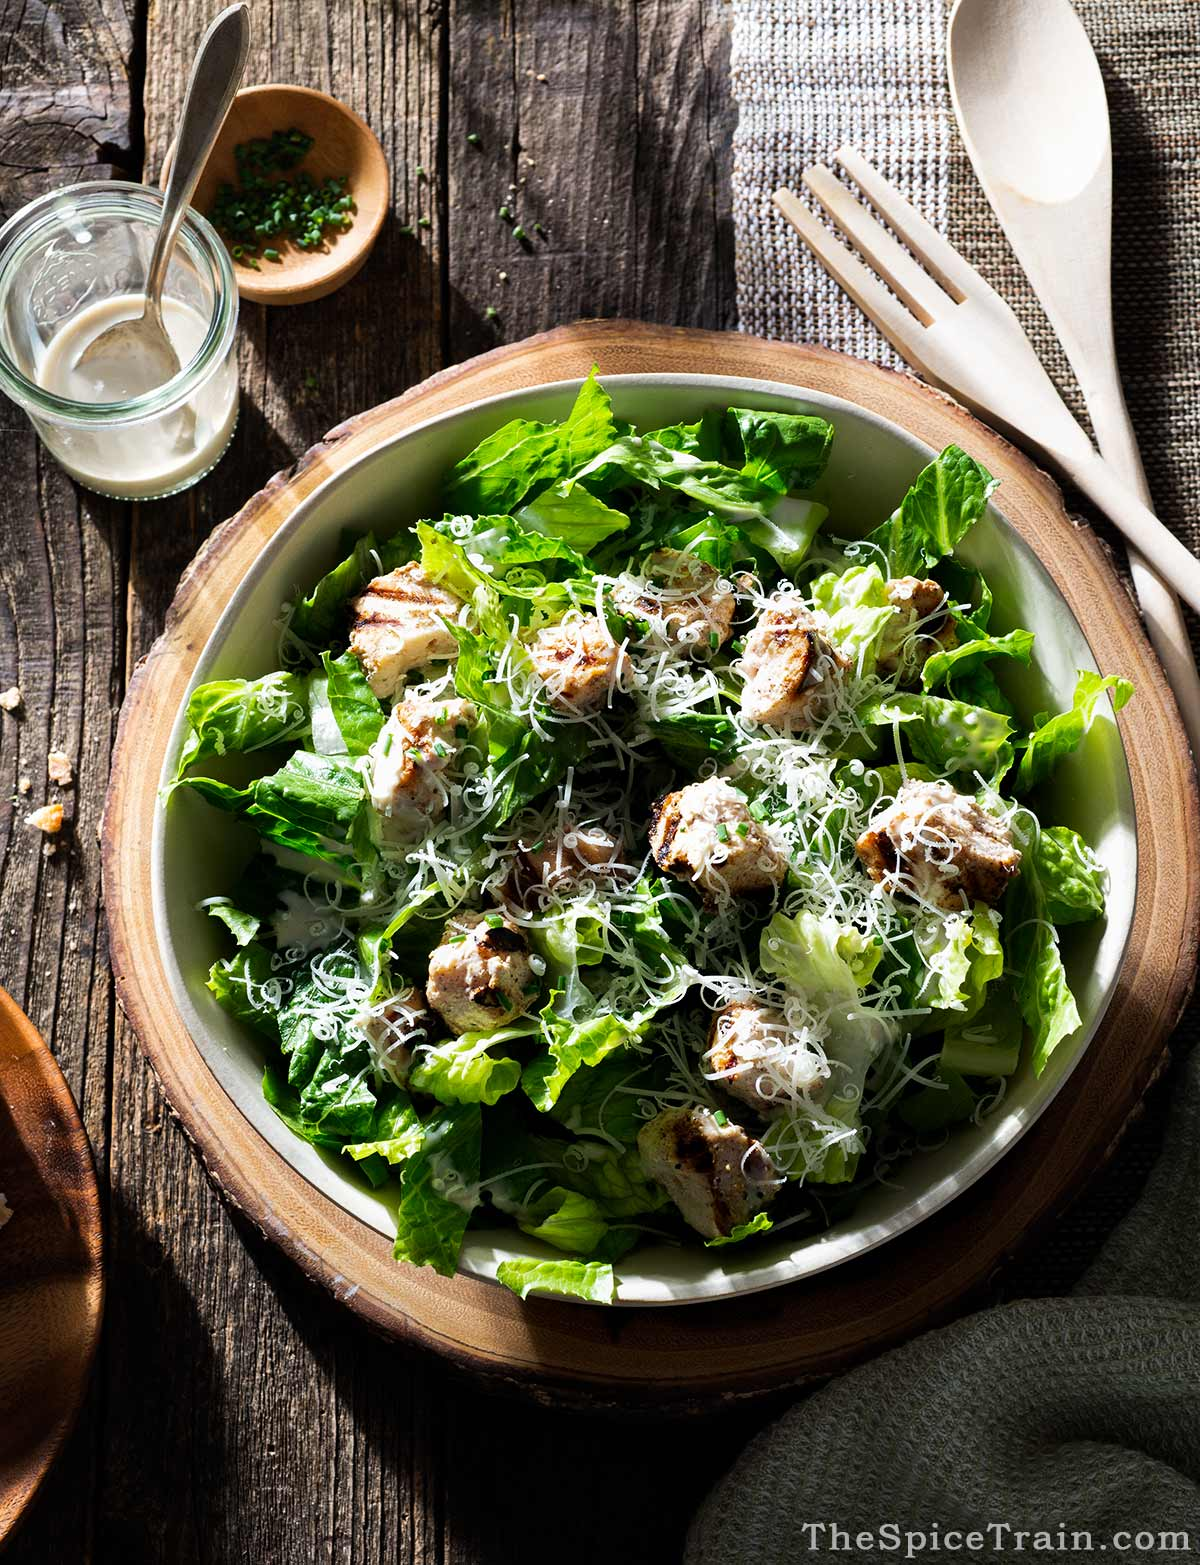 A large bowl of chicken caesar salad with a jar of dressing on a wood table.